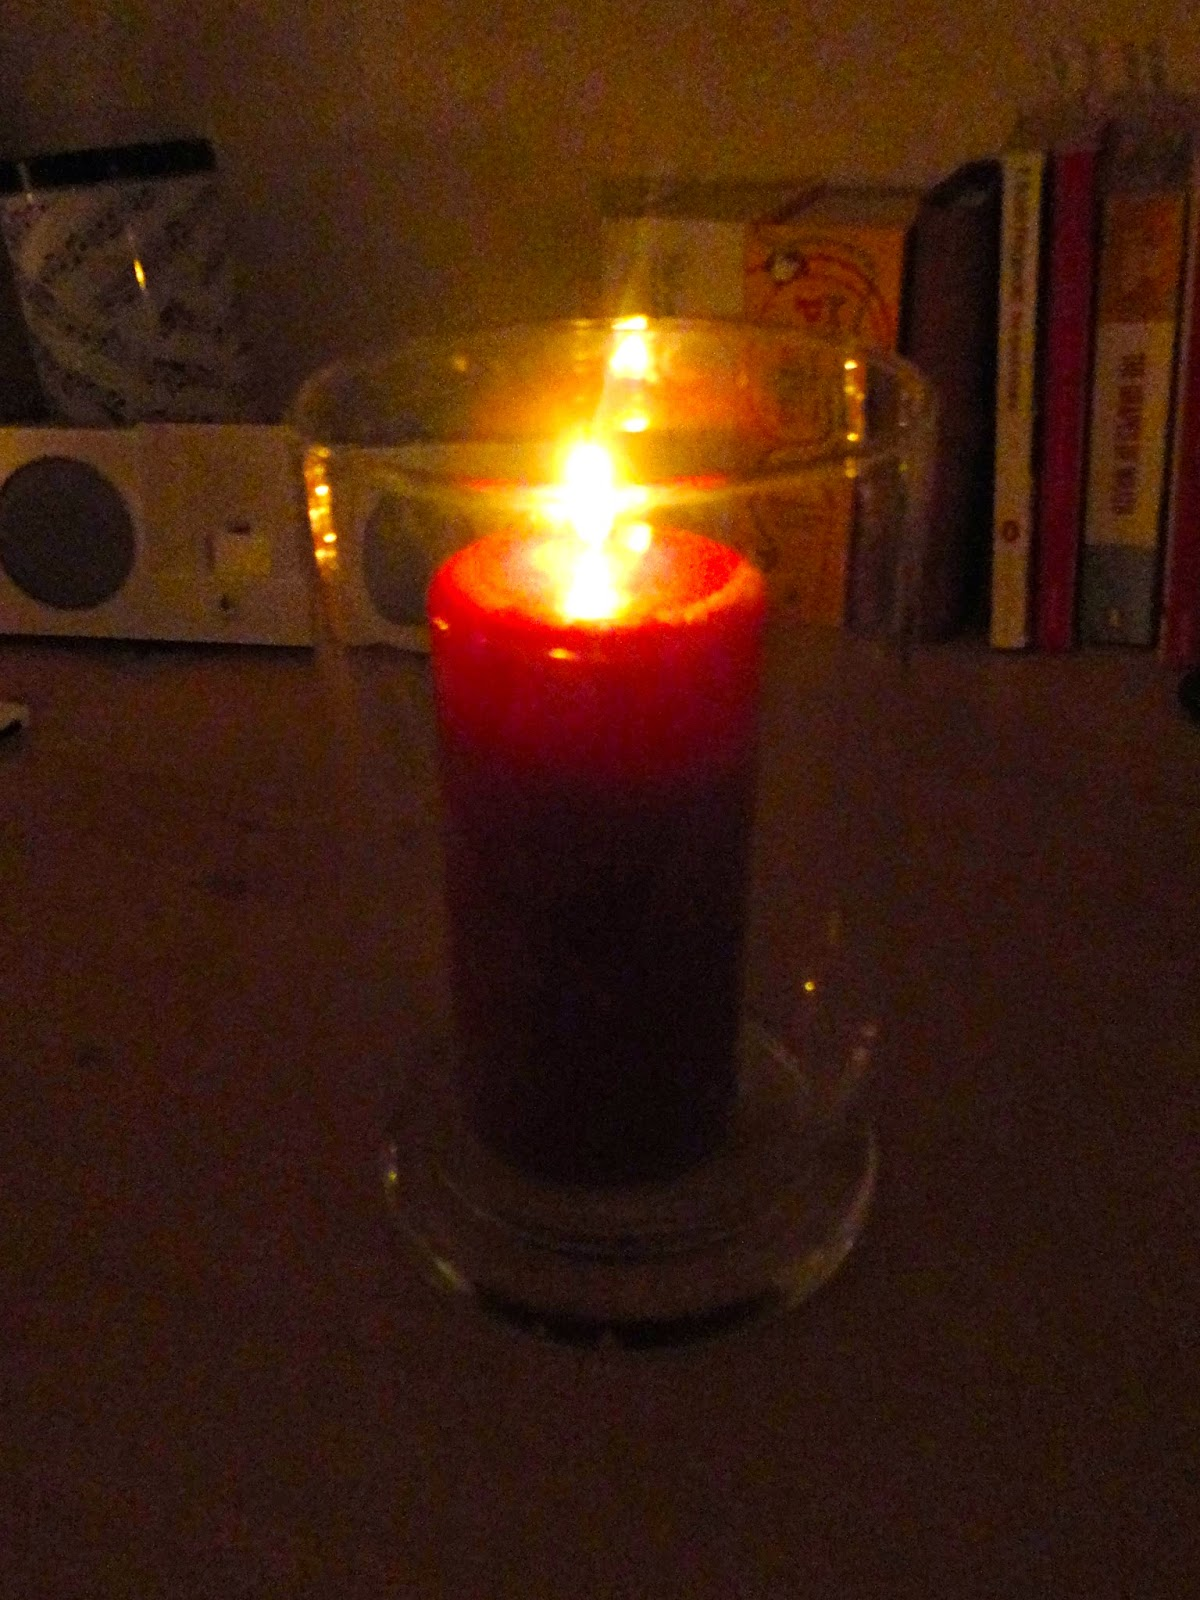 Red scented pillar candle lit in glass hurricane jar